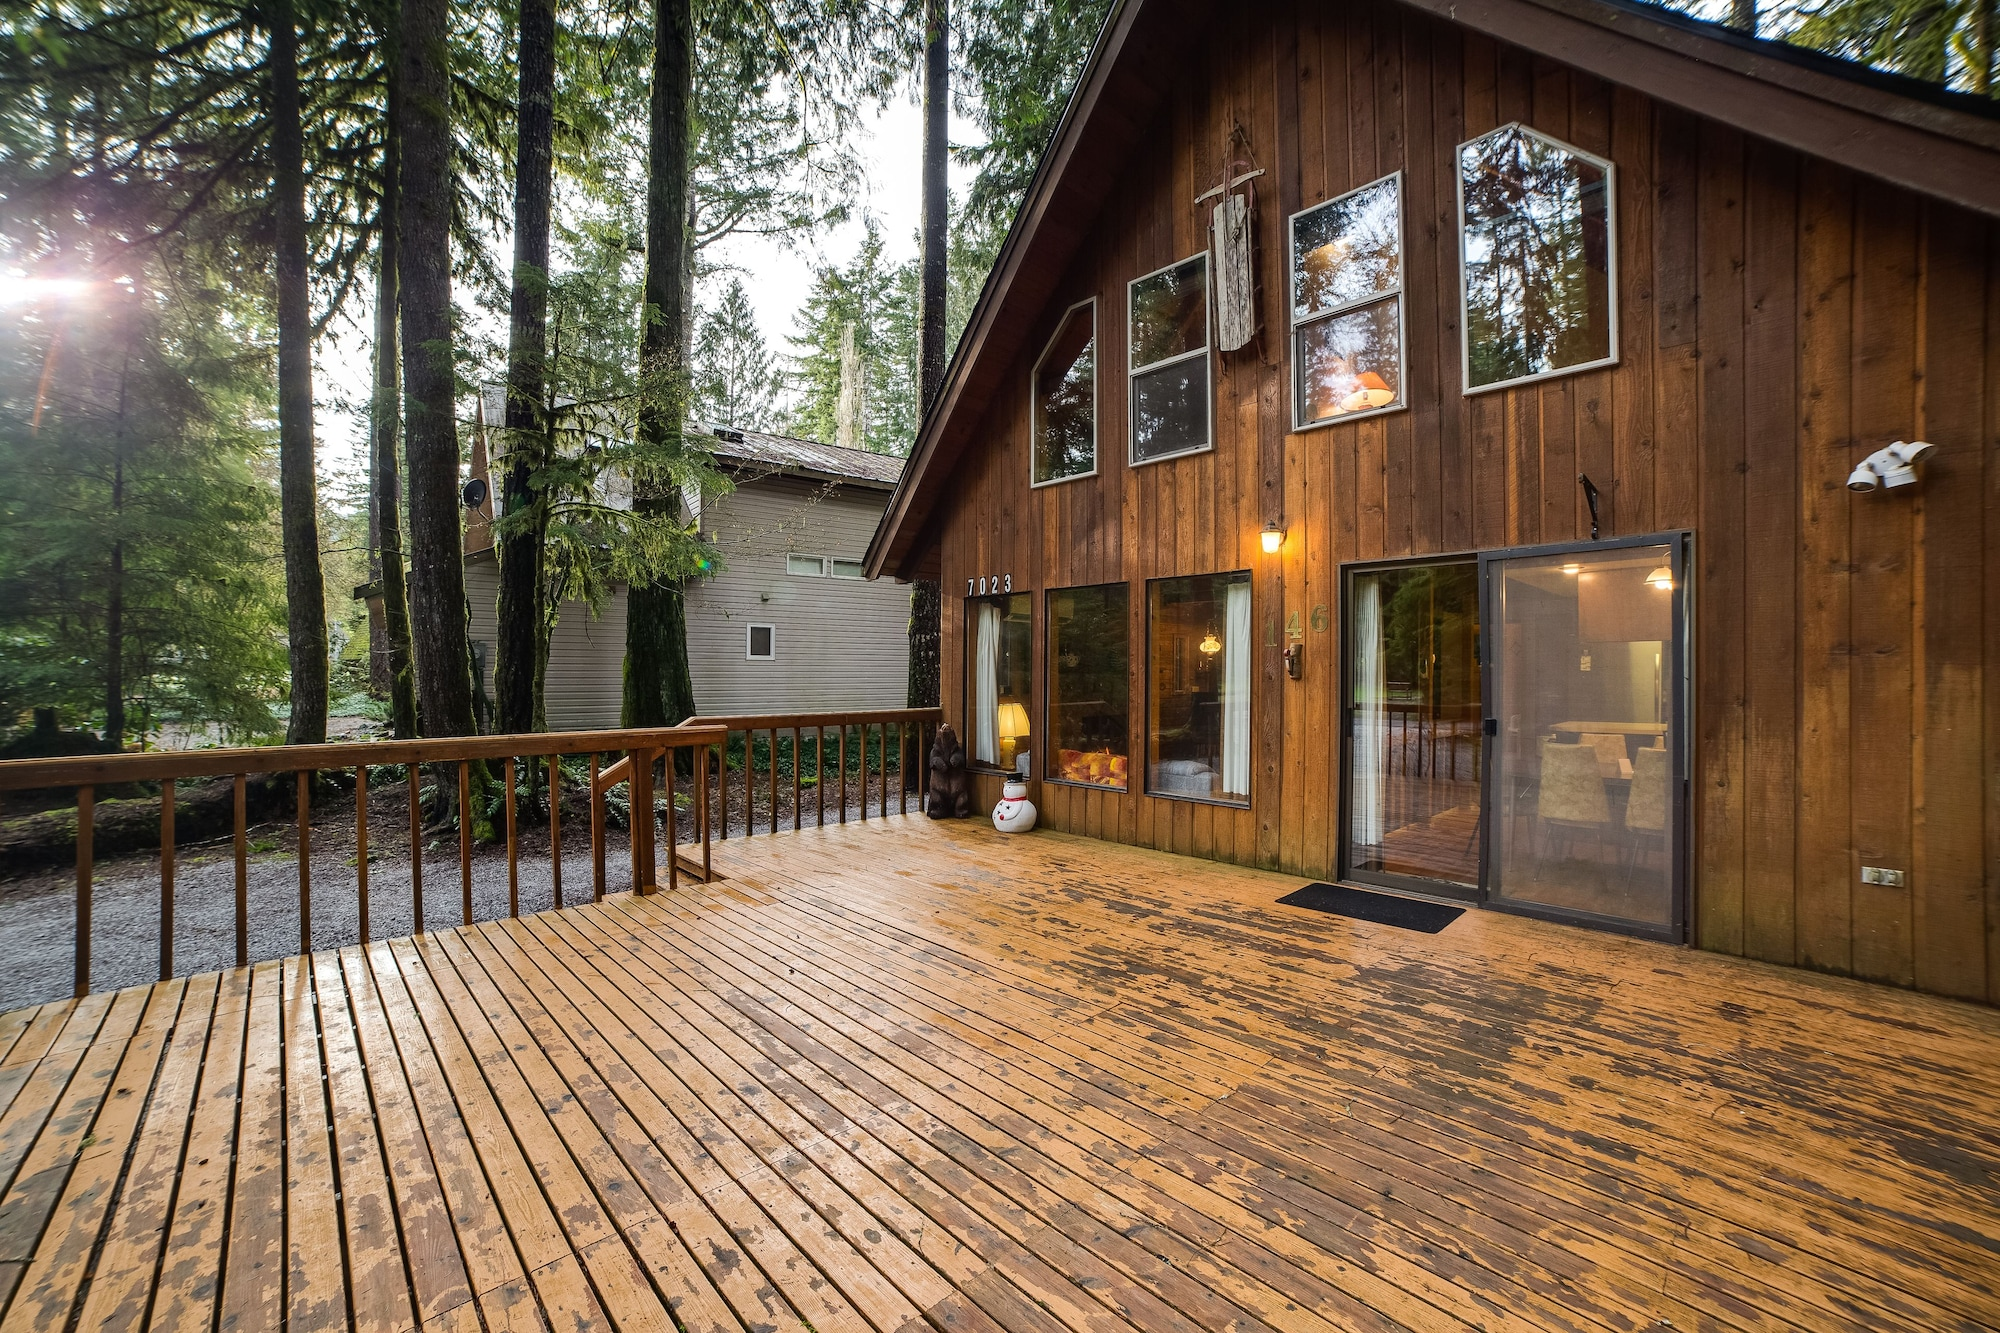 Mt. Baker Lodging Cabin 35 – A/C, Pets OK, Sleeps 6! by MBL, Whatcom